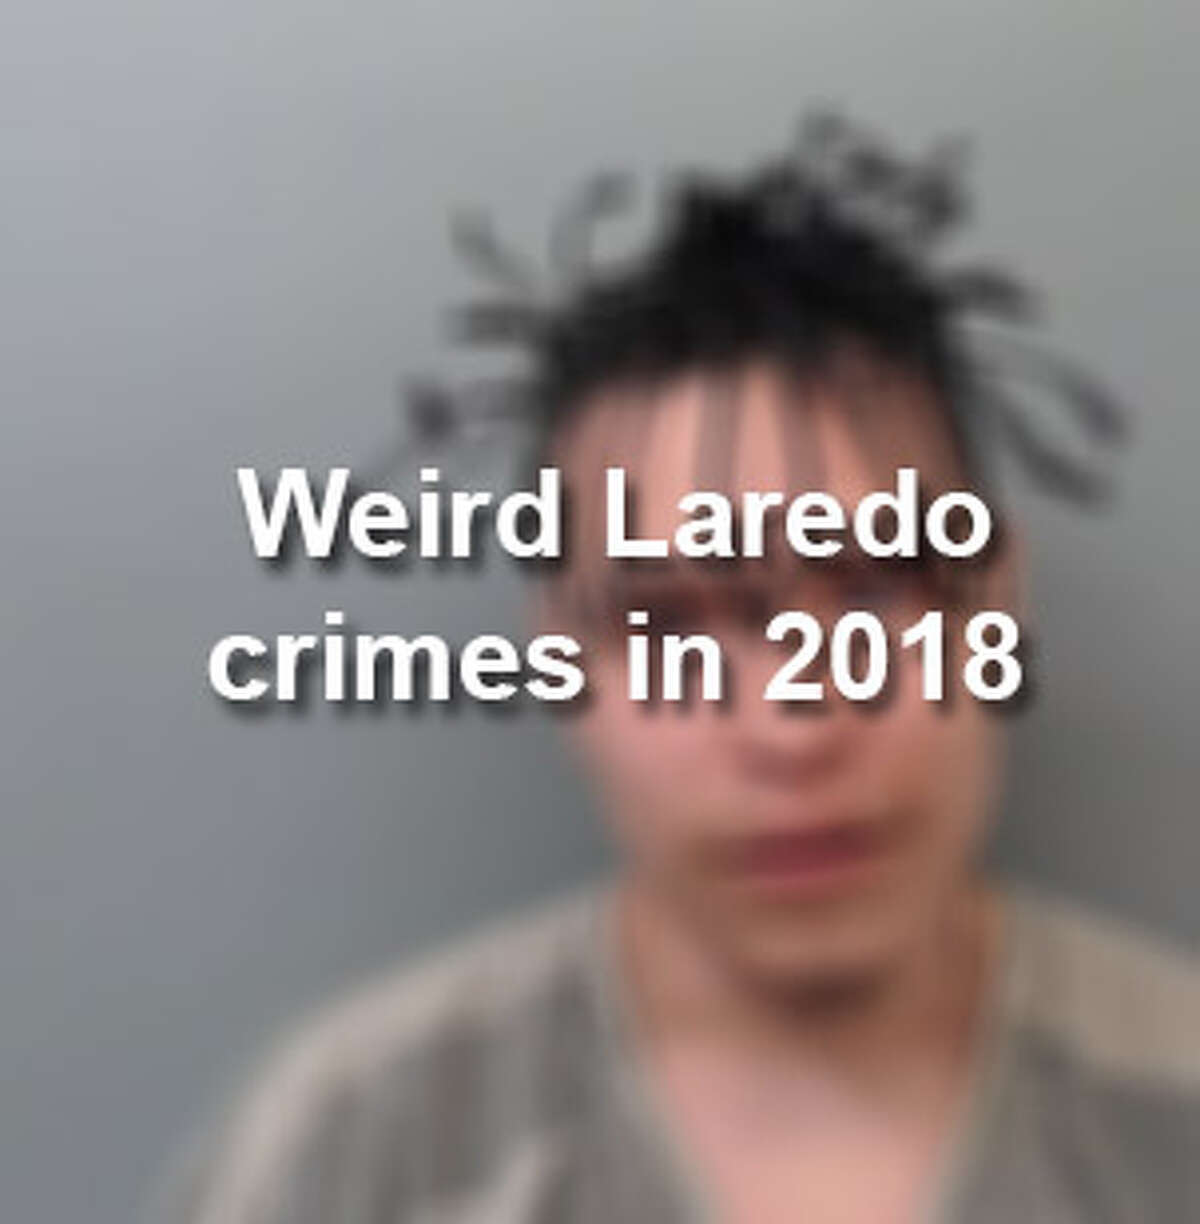 Keep scrolling to see some of the most bizarre arrests that occurred in Laredo in 2018.